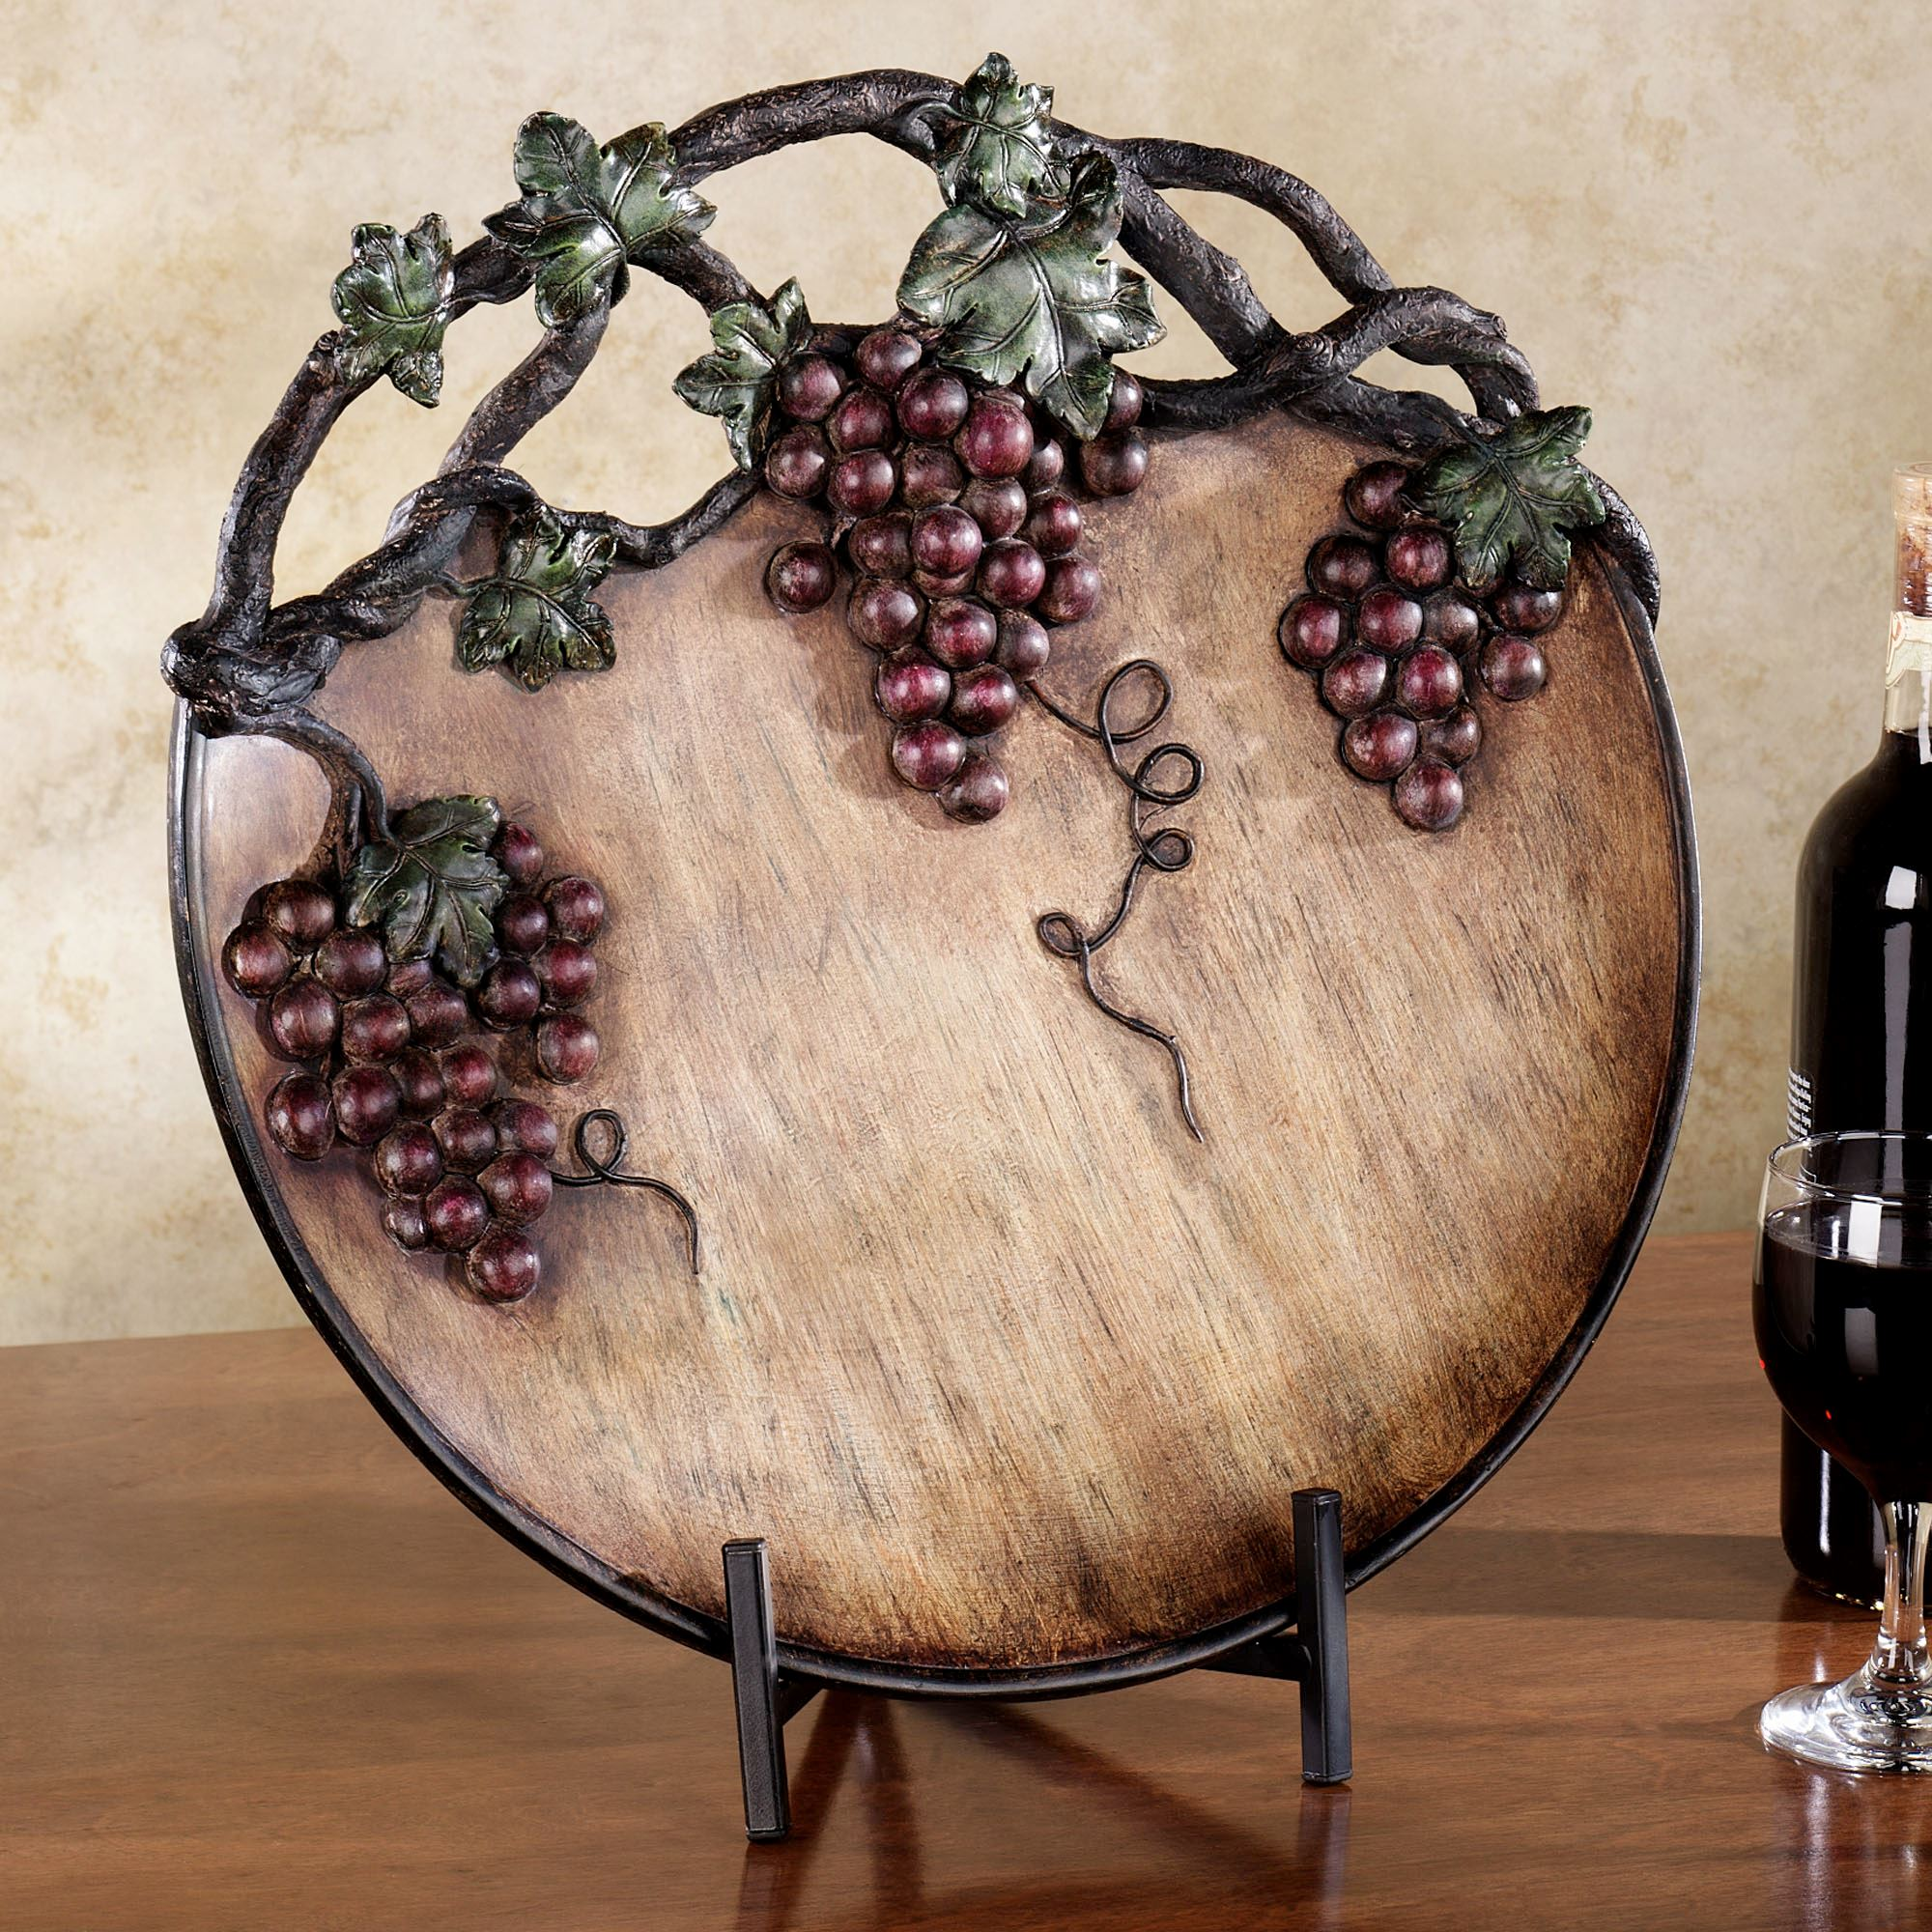 Free Download Home Grape Harvest Decorative Charger Plate With Stand 2000x2000 For Your Desktop Mobile Tablet Explore 45 Timeless Wallpaper Border Kitchen Grapes Borders